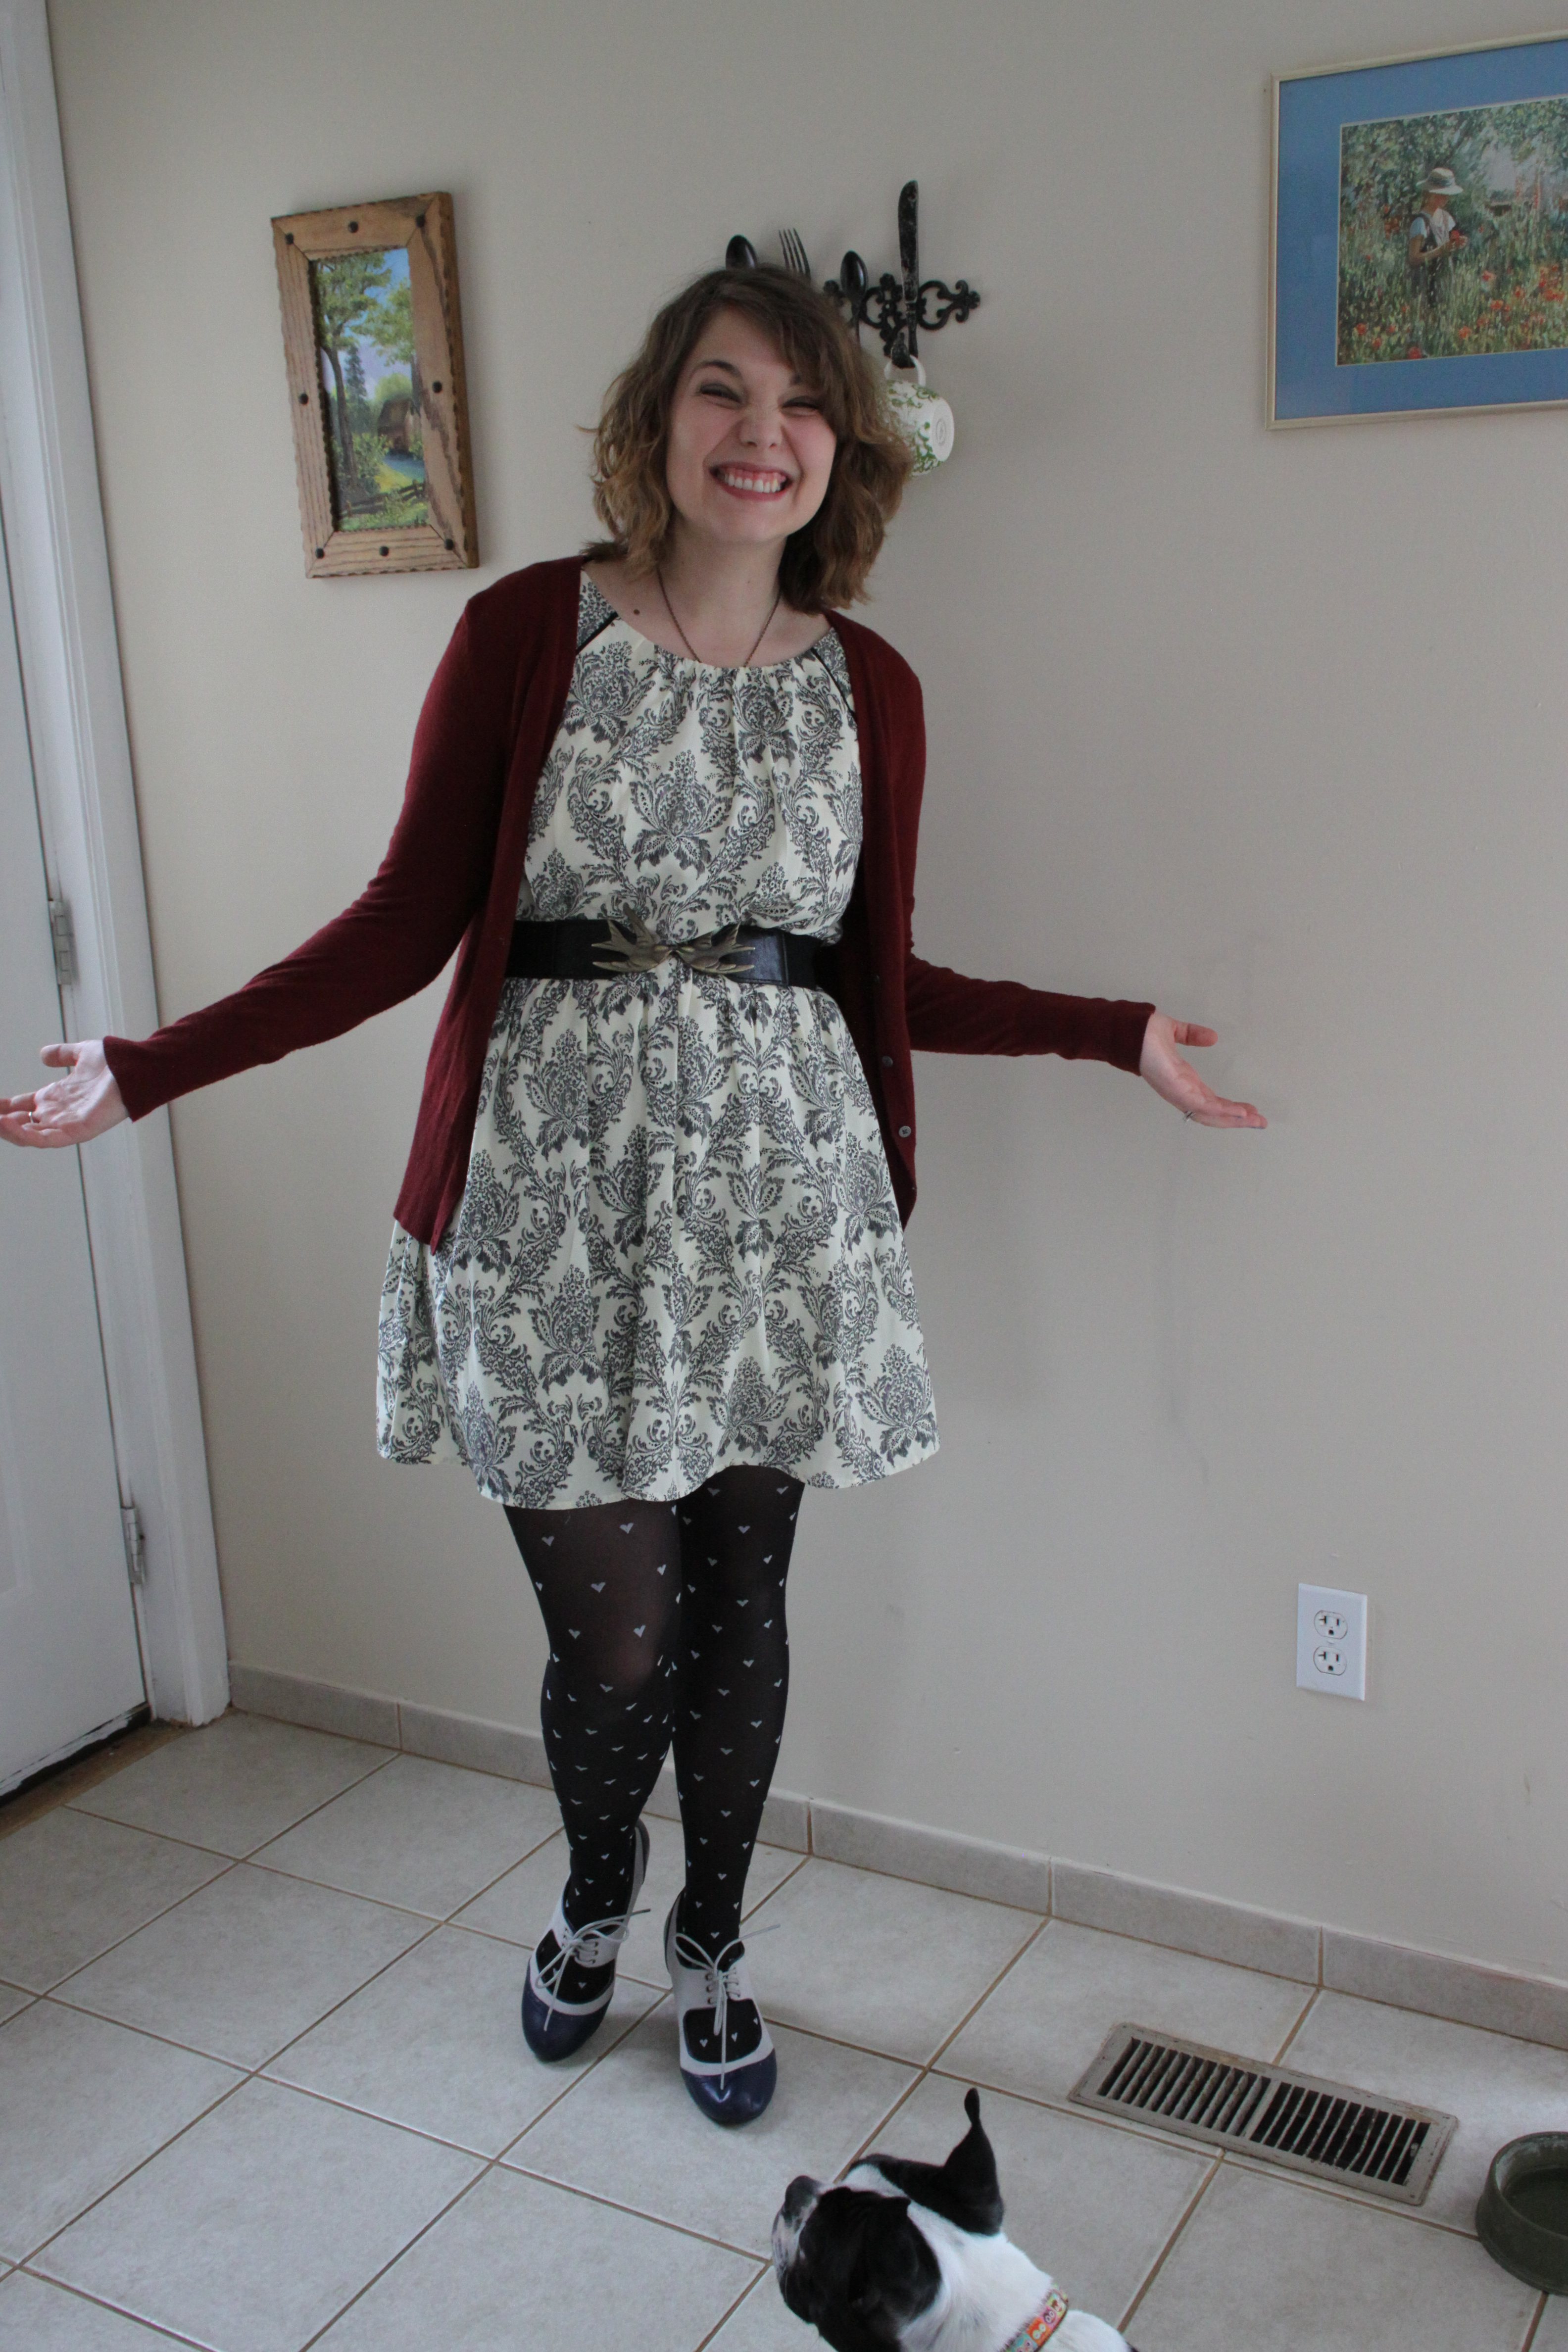 721de01d89ebe What I Wore: Dress: ModCloth (Style Surprise) Cardigan: Target Necklace:  Etsy Belt: Charlotte Russe Tights: Old Navy Shoes: ModCloth